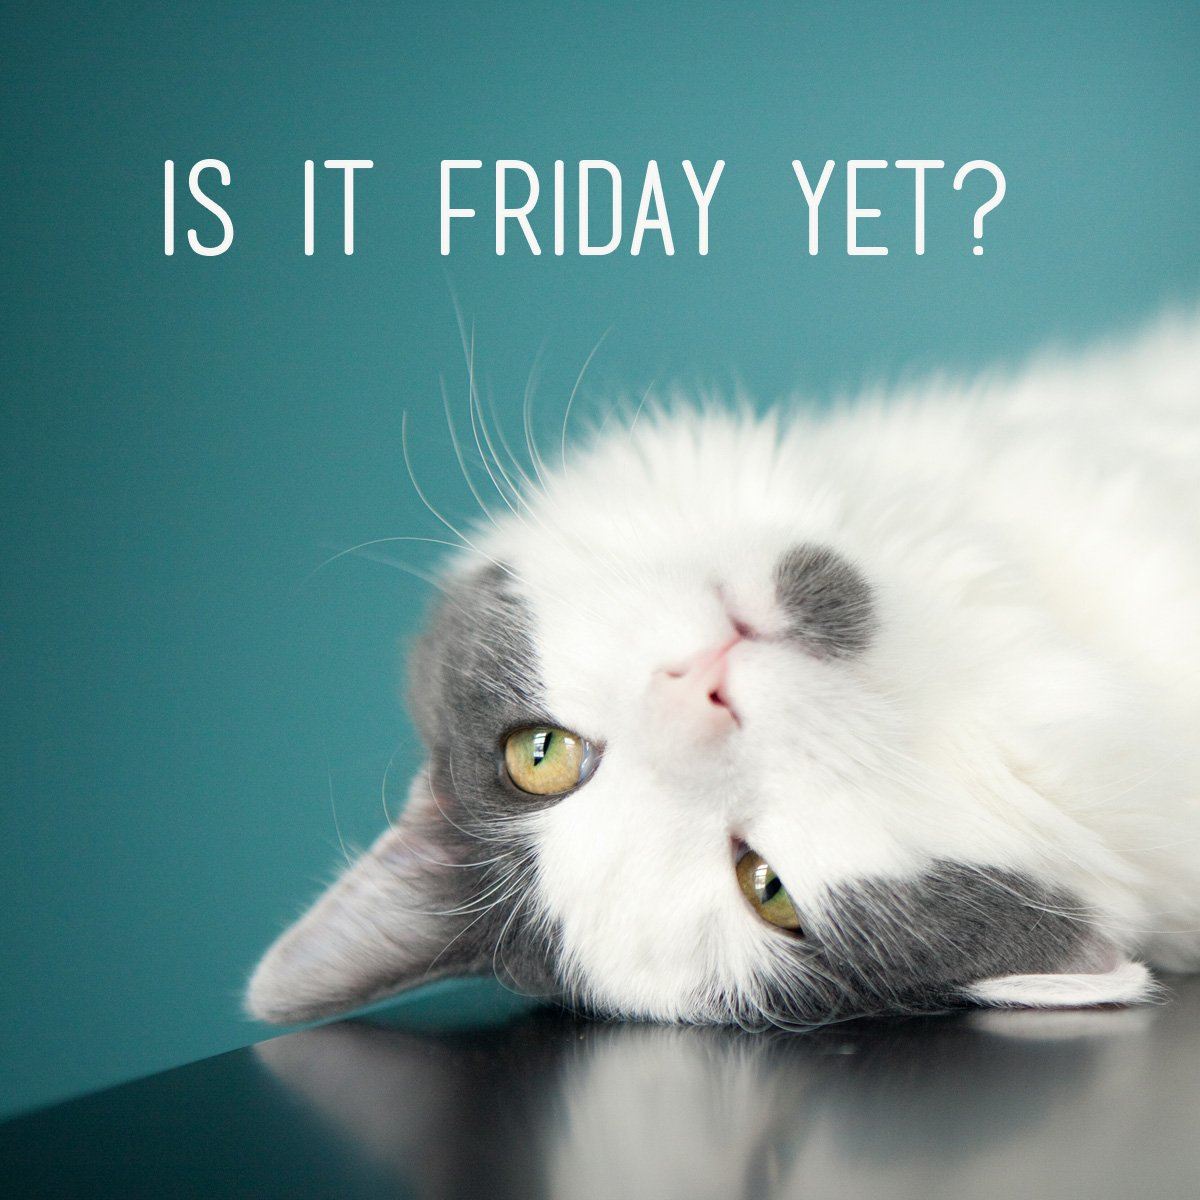 Yes, it's Friday! Have a great weekend e...